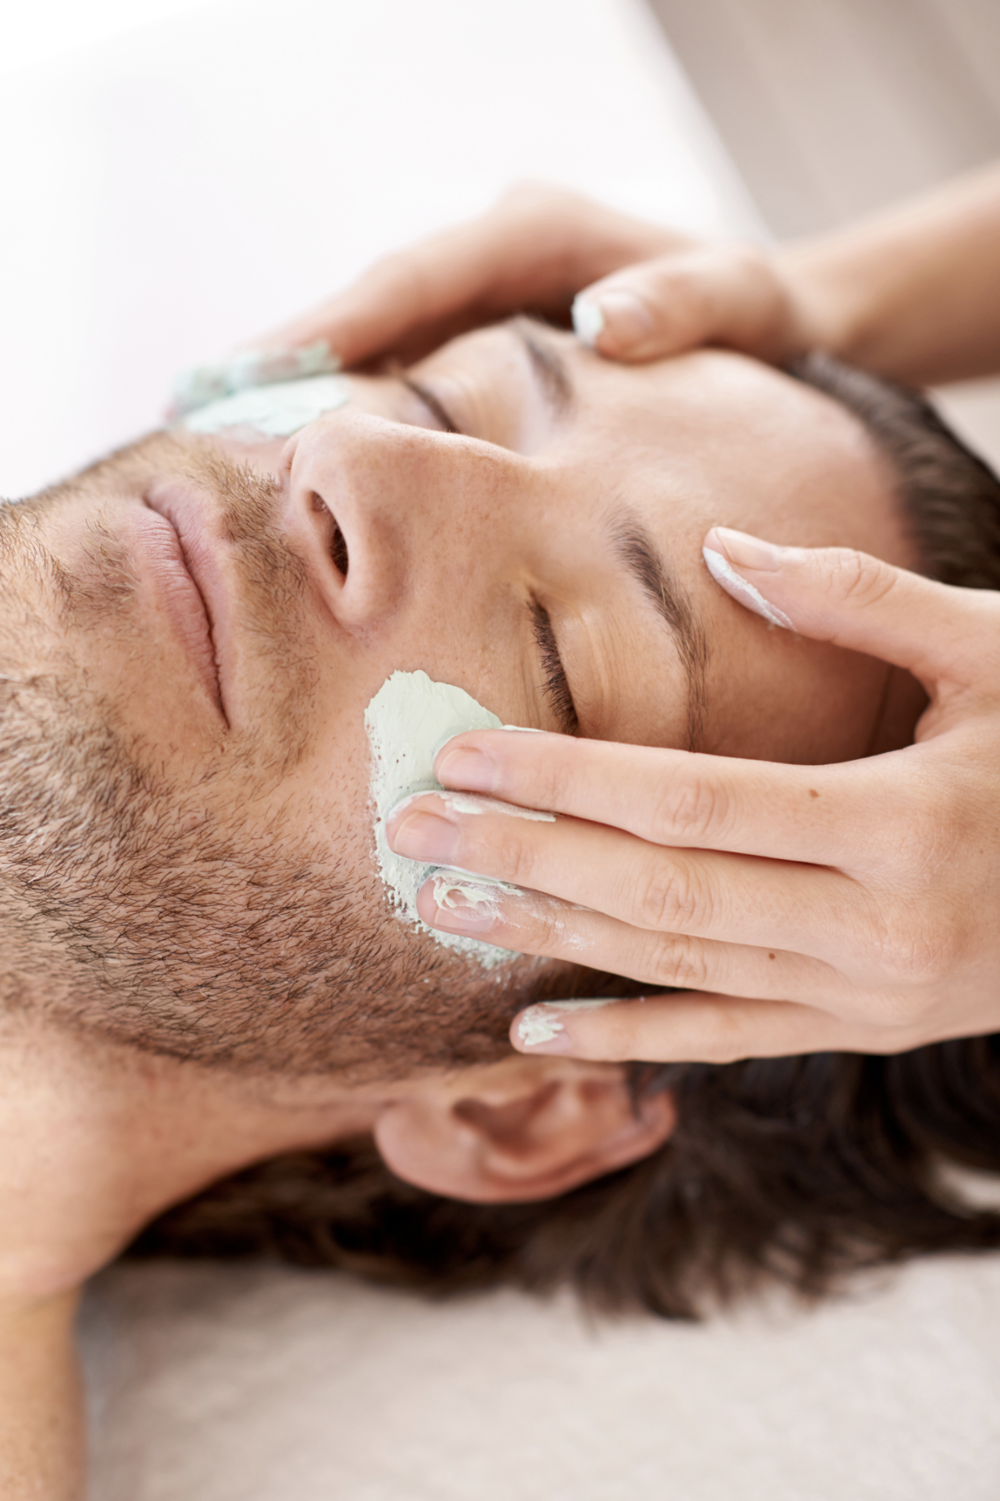 75 min | $150.00 - Customized to target breakouts that are associated with adolescent or mature skin types, this gentle (yet effective) facial helps to minimize, calm and relieve inflamed acne, while also prepping the skin for success in preventing future breakouts.Deep Cleanse, Enzyme Exfoliation Mask, Thorough Extractions, Specialty Mask, High Frequency and Dewy Lip Treatment.also including: neck and shoulder massage(Recommended booster: Heal & Protect Chemical Peel)